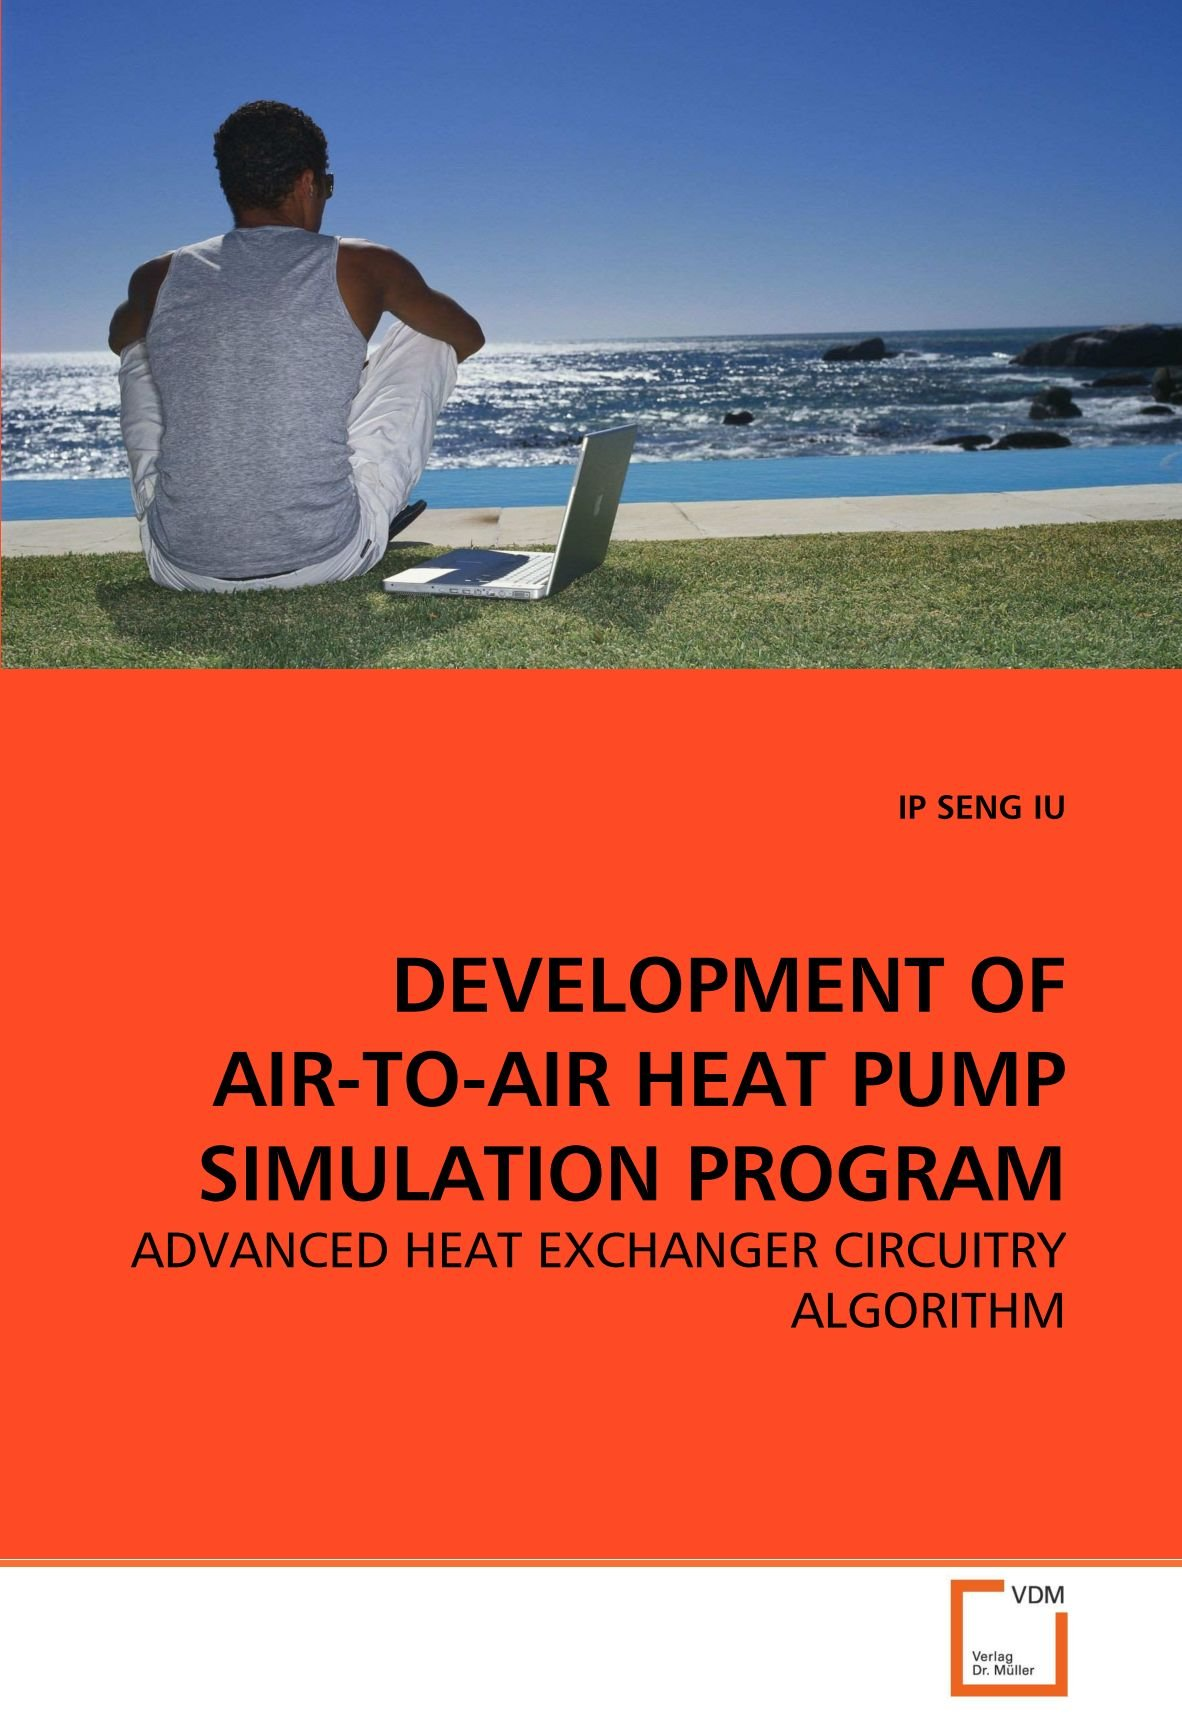 Download DEVELOPMENT OF AIR-TO-AIR HEAT PUMP SIMULATION PROGRAM: ADVANCED HEAT EXCHANGER CIRCUITRY ALGORITHM pdf epub